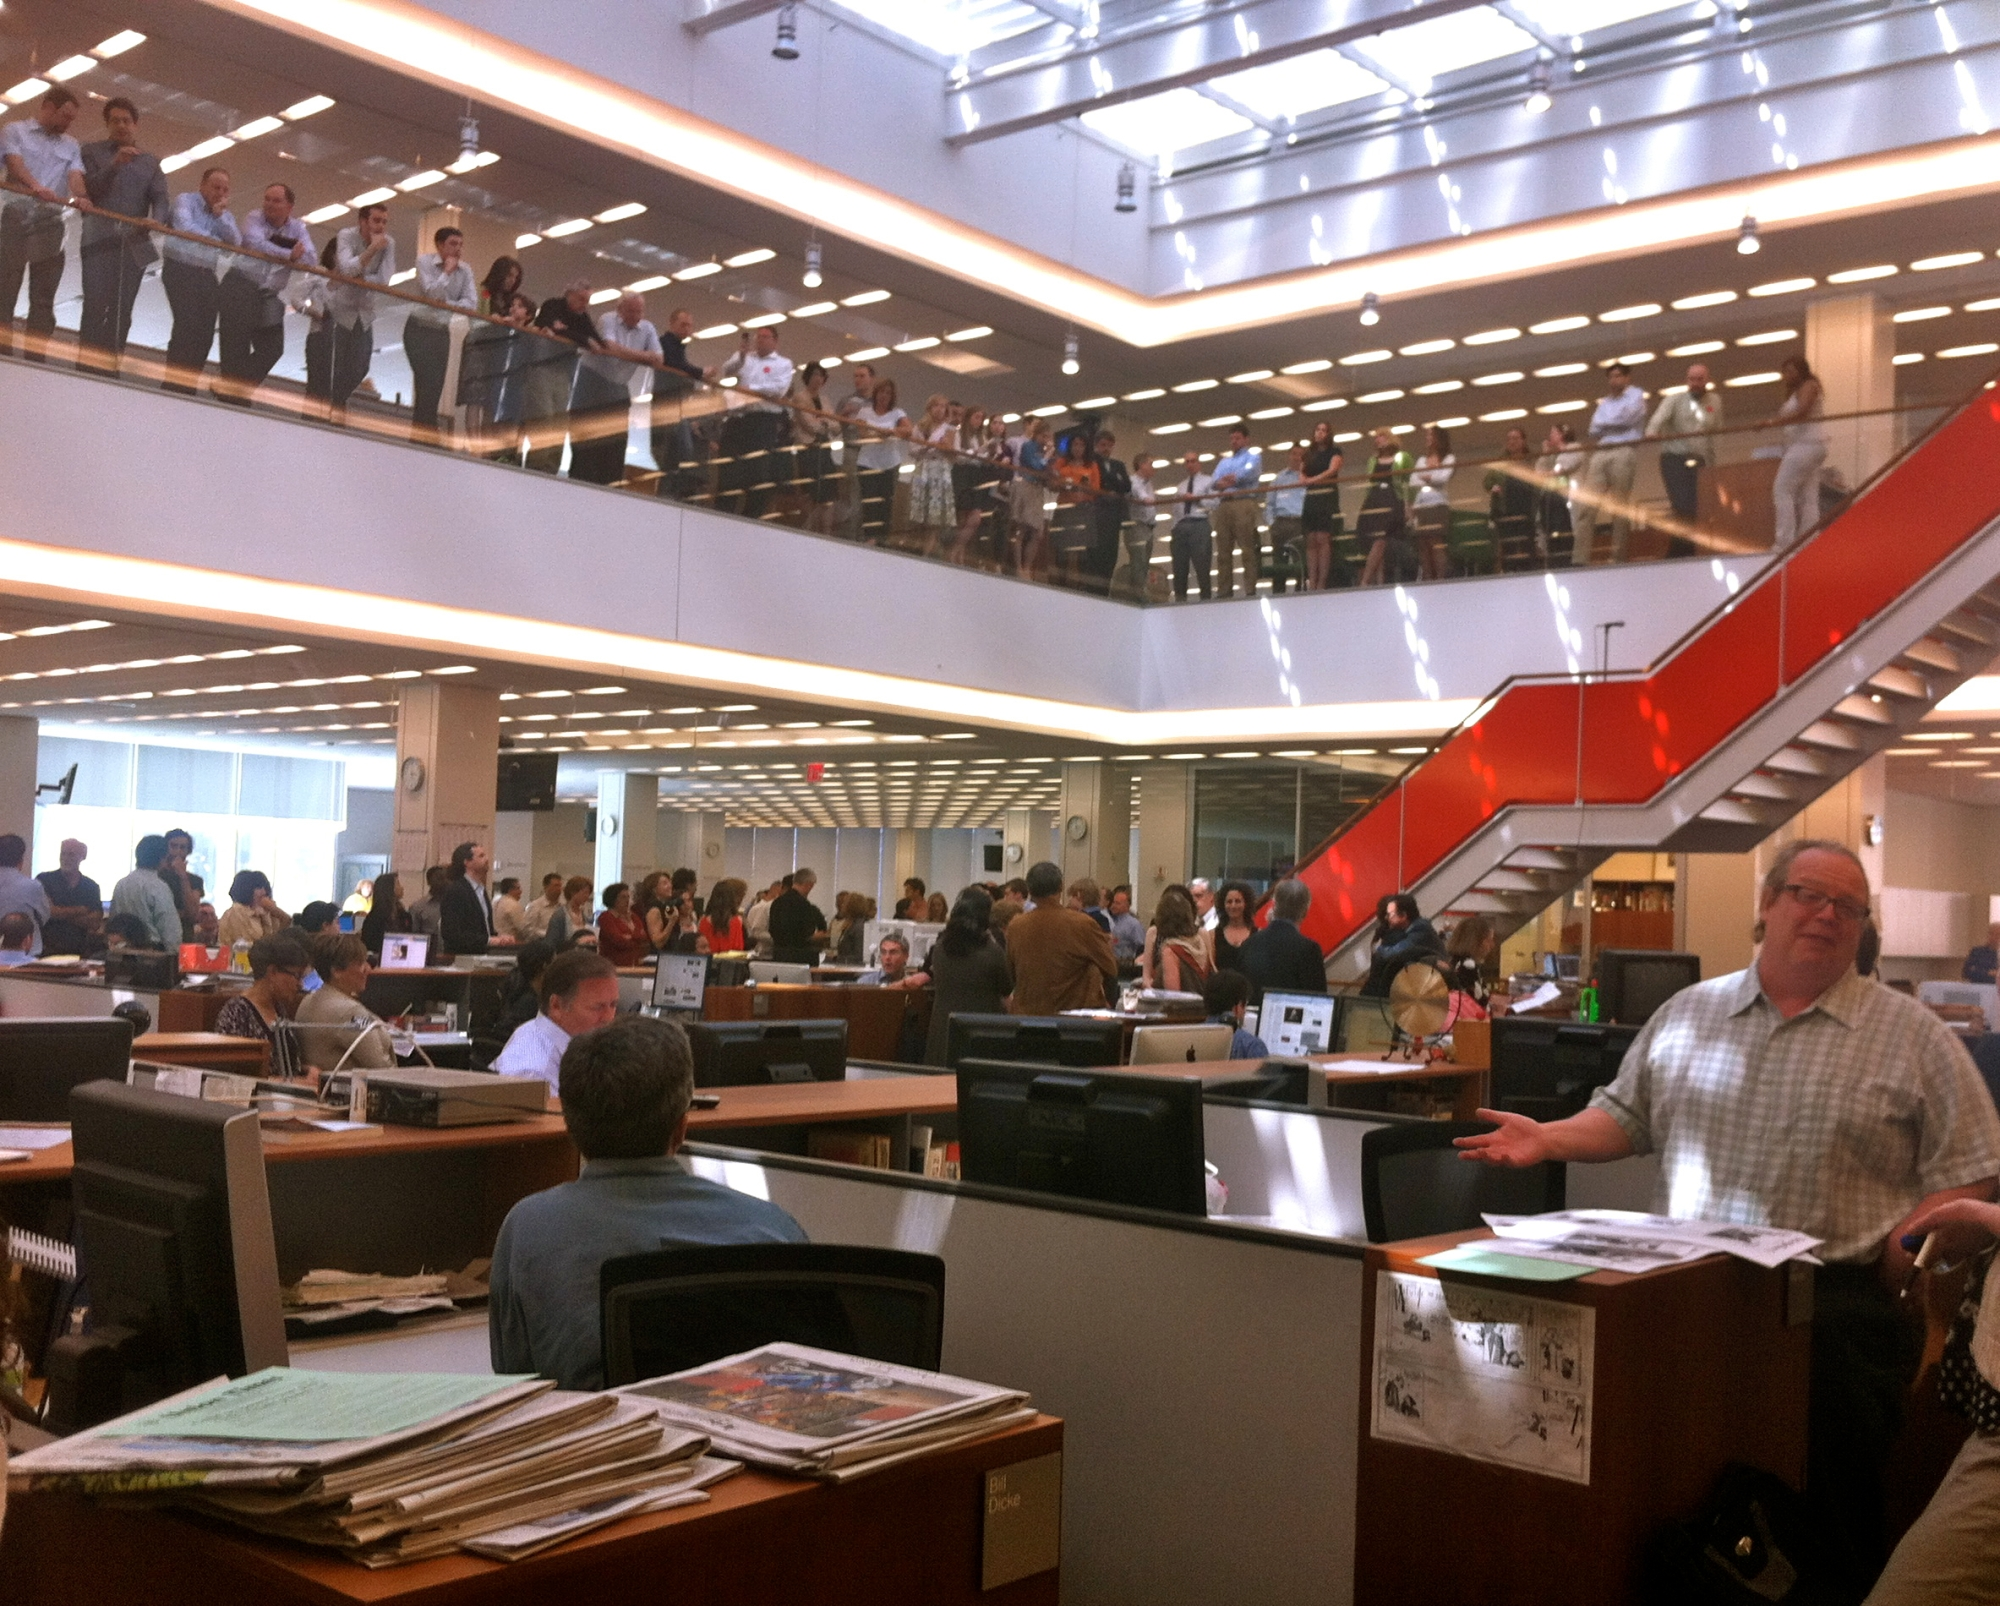 NYT Inside Pulitzer Announcement Photo